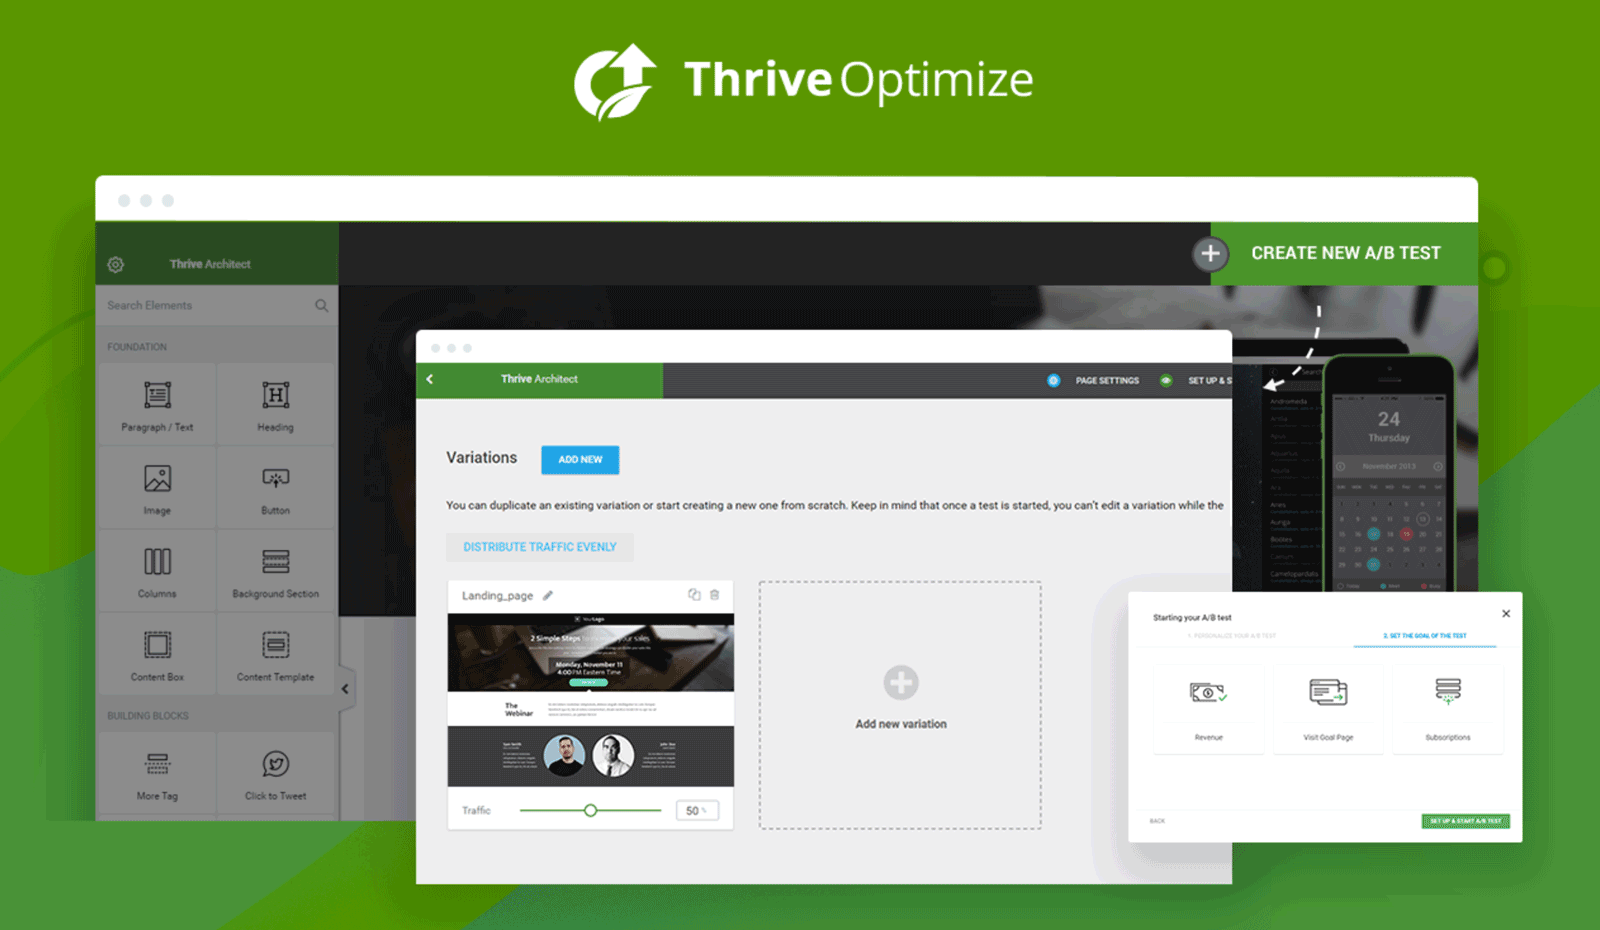 Thrive Optimize User Interface